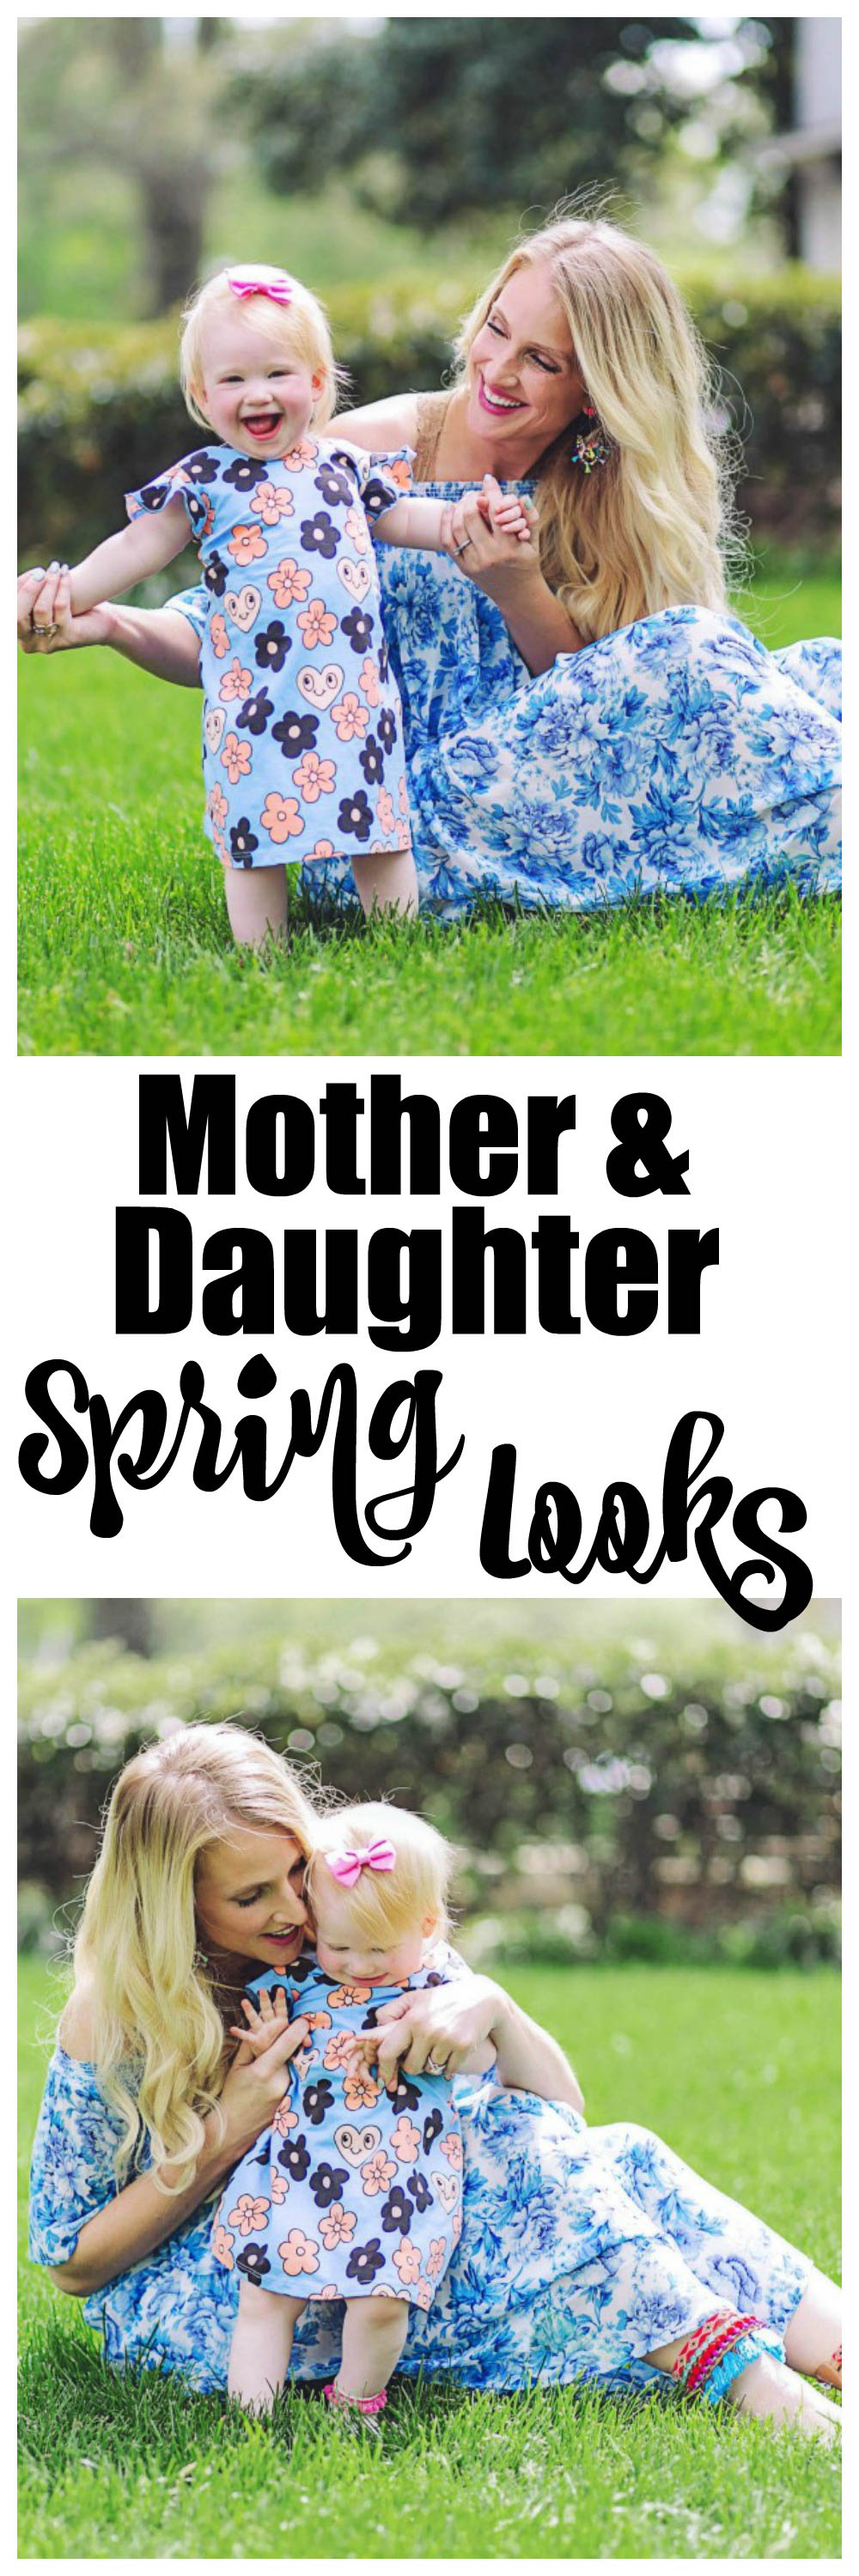 mother and daughter matching spring looks